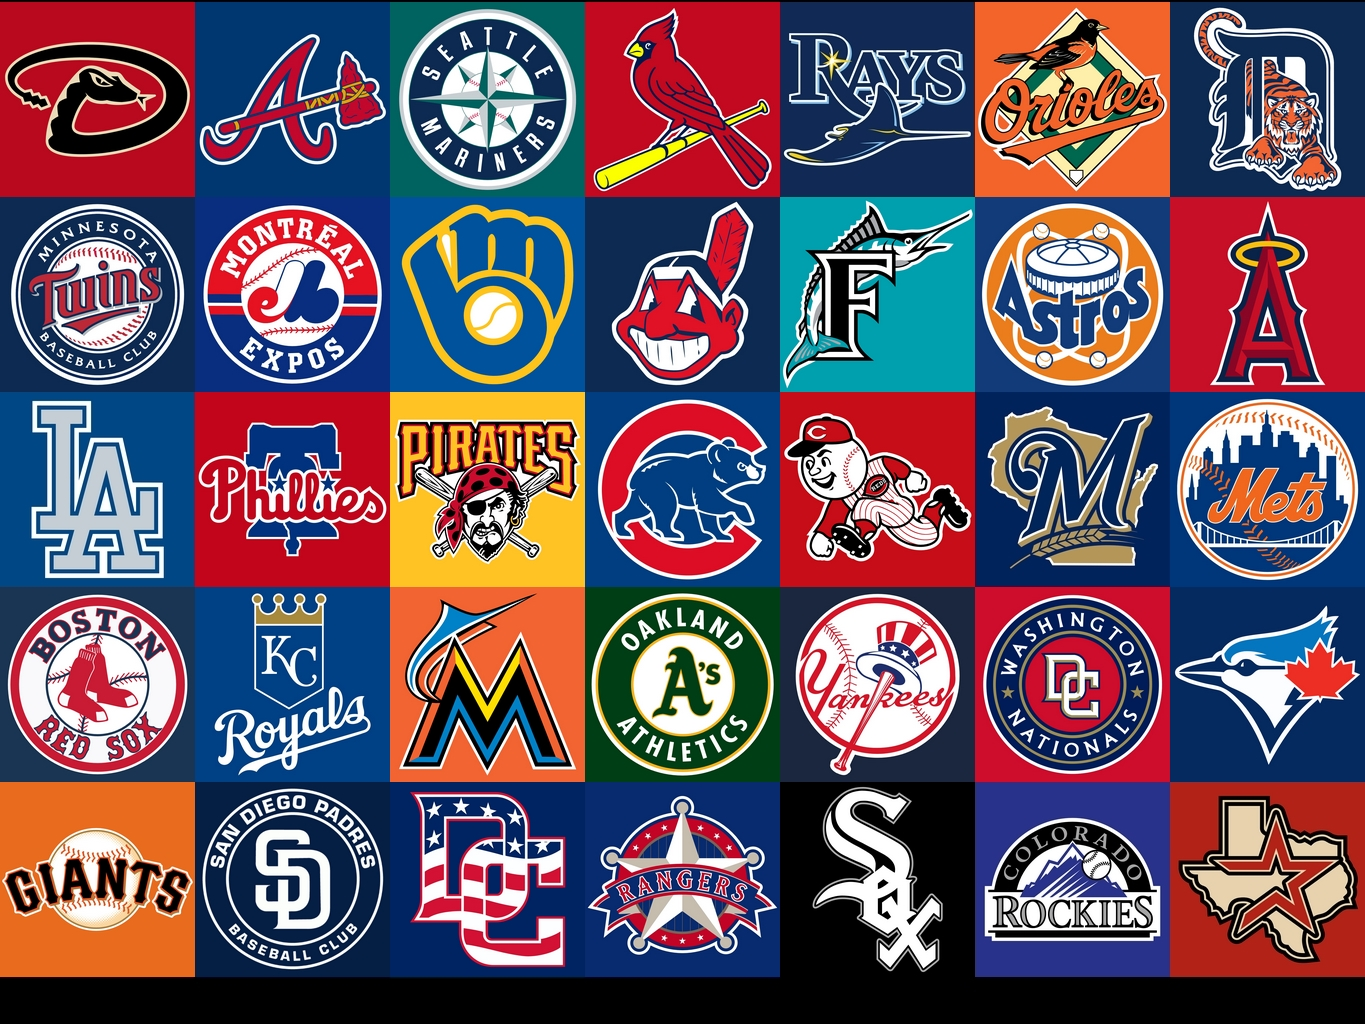 Drawn baseball baseball logo Mlb your majors? more! and